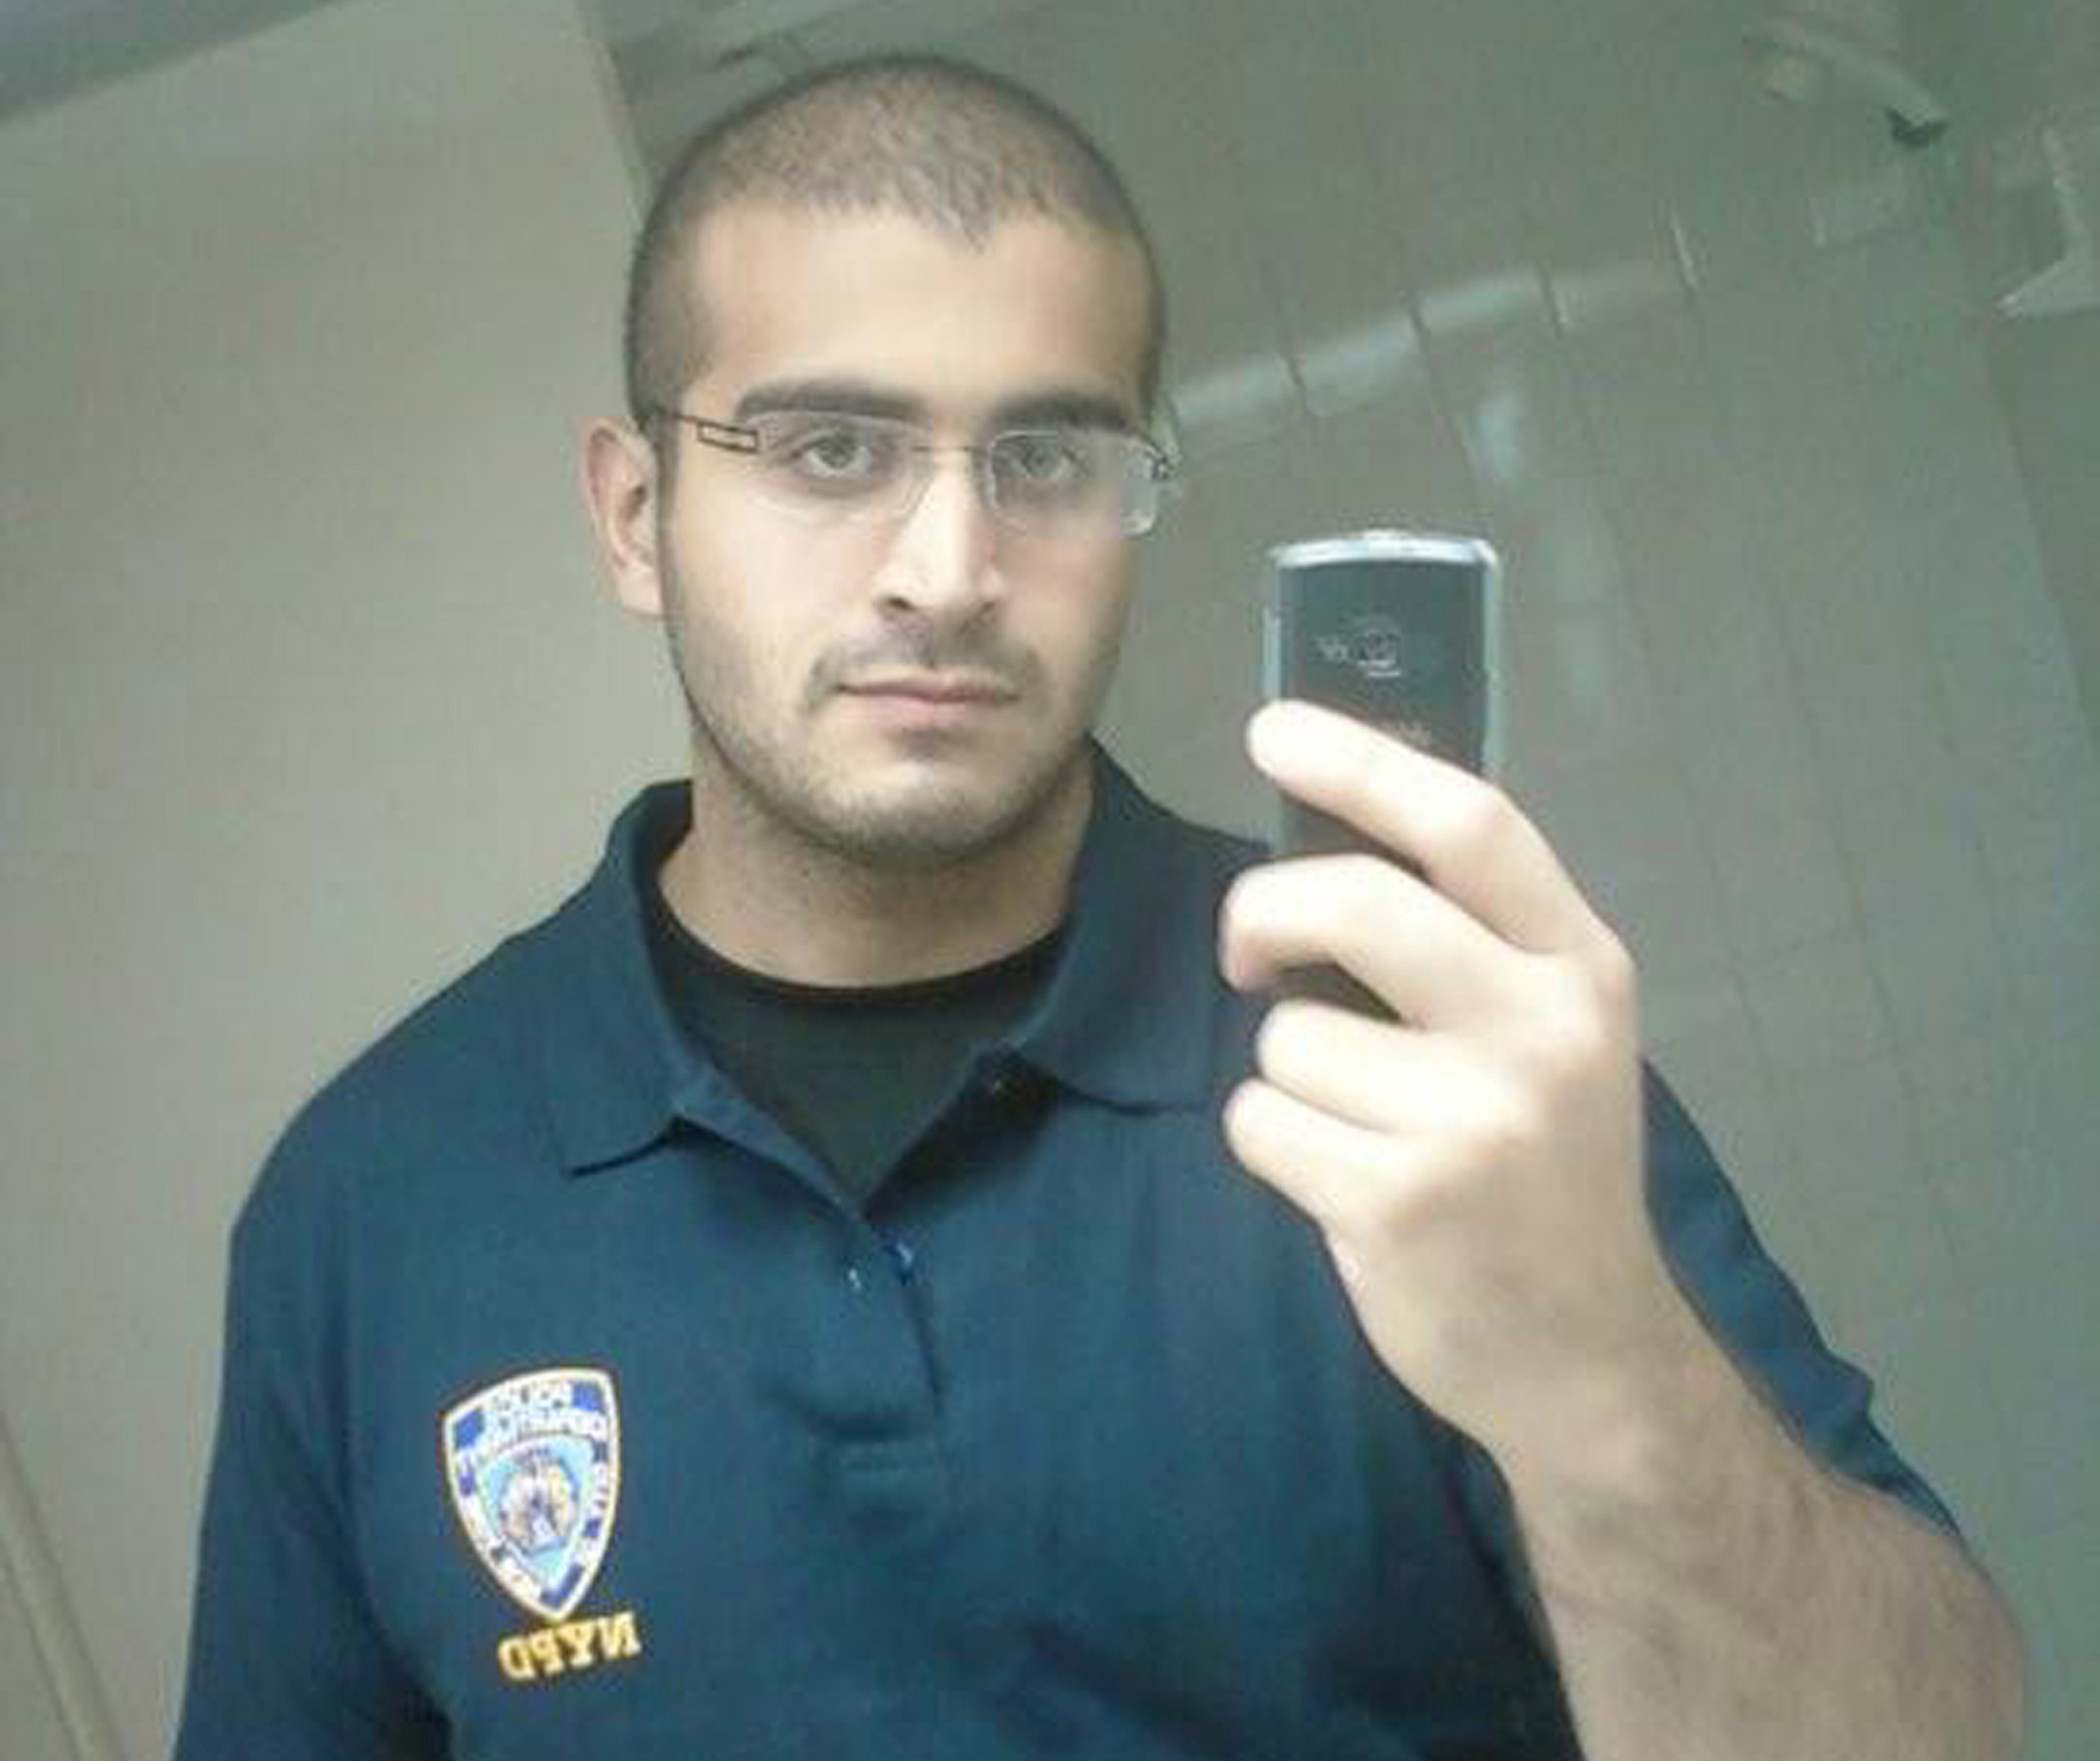 An undated photo of Omar Mateen, identified as the gunman in mass shooting at a gay club in Orlando, Fla., released on June 12, 2016.